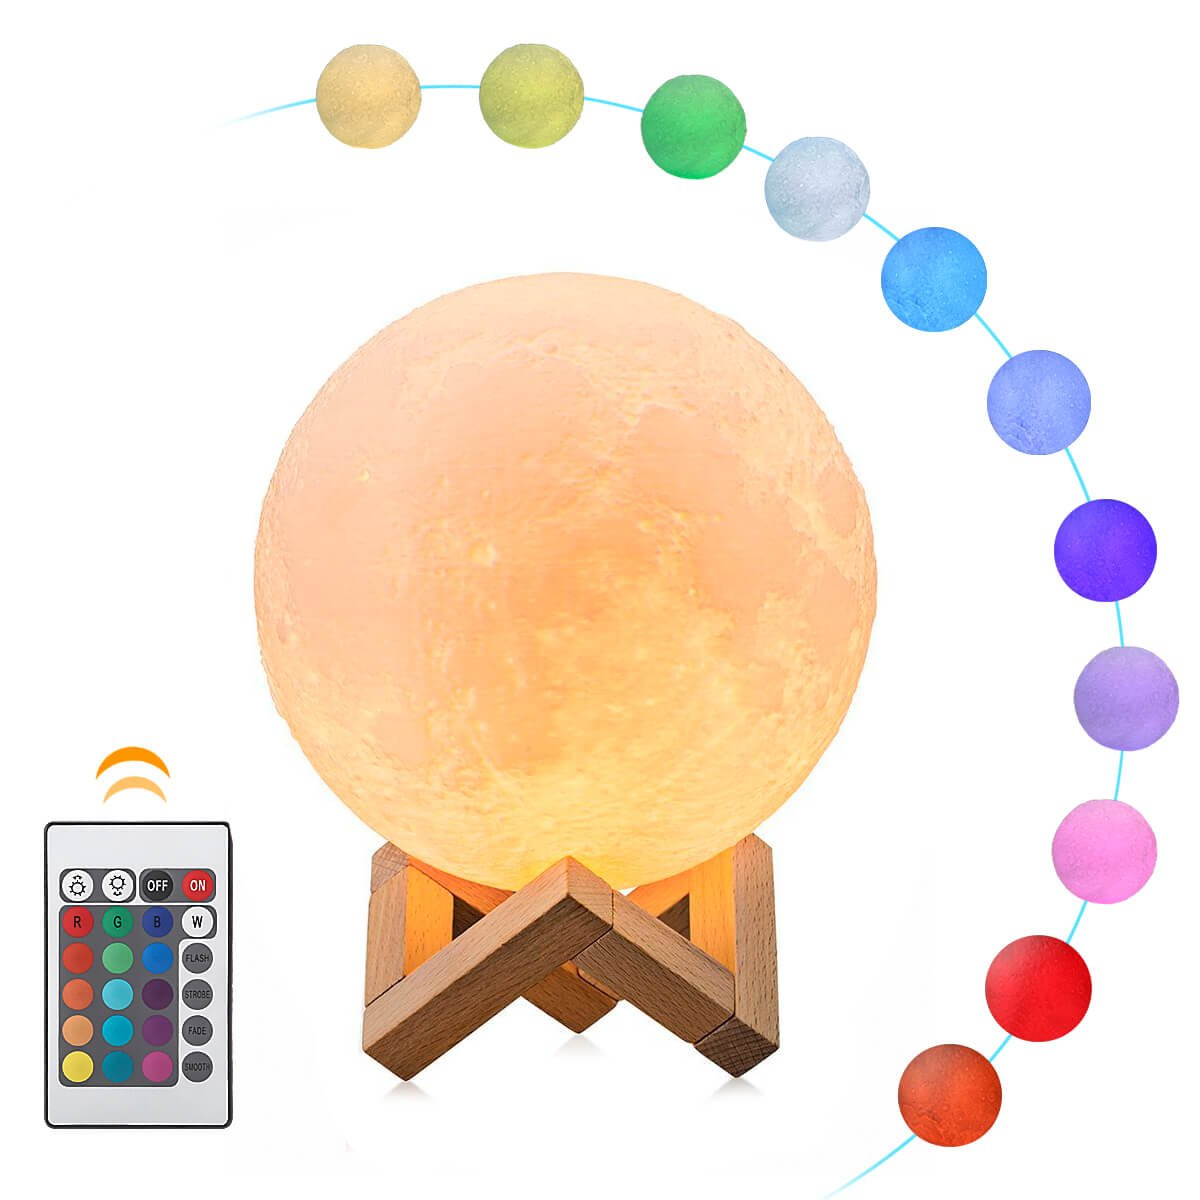 3D Printed Moon Lamp, ALOVECO 16 Colors RGB Moon Light with Remote Control, Dimmable USB Rechargeable LED Lunar Lights Night Light for Kids Women Lover Christmas Gift(4.8IN)